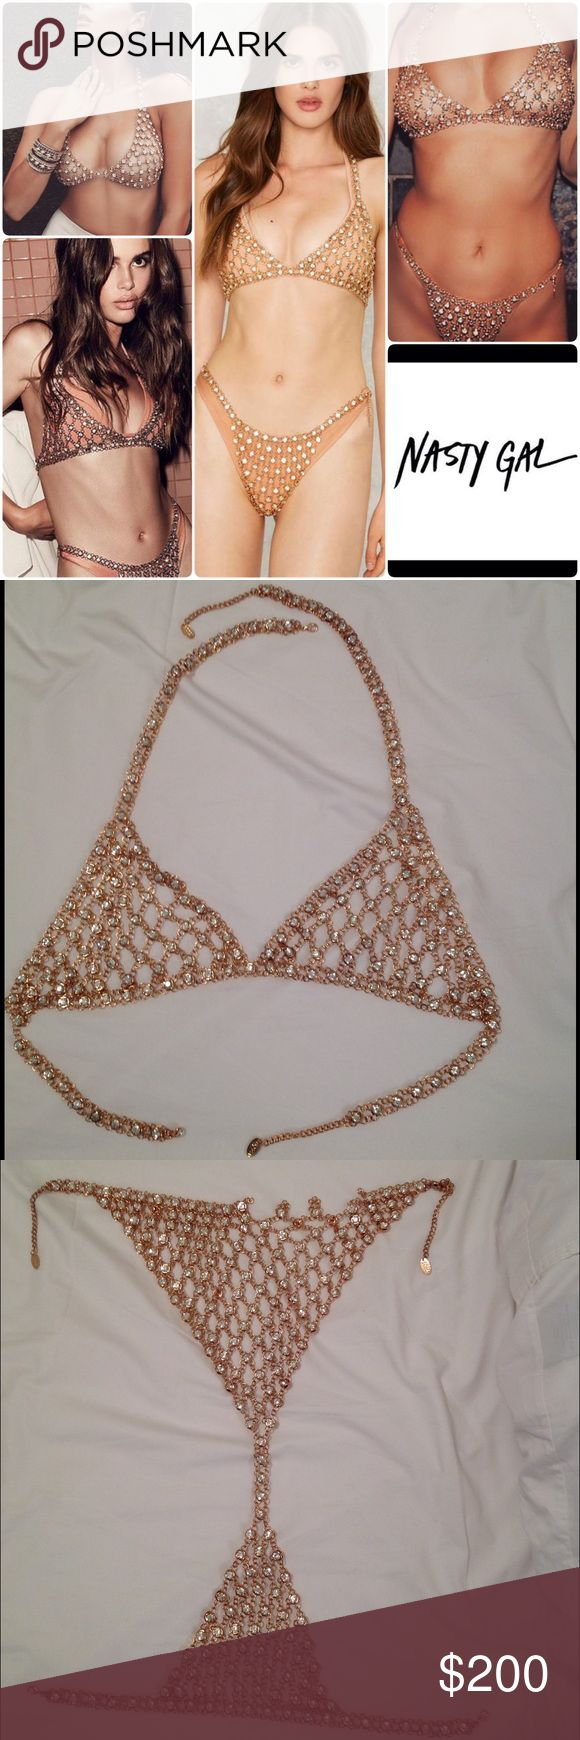 BOSSA Belize Crystal Bikini Set /ONE SIZE The Belize Bikini Set by BOSSA comes in gold chainmail and features a plunging neckline, adjustable back lobster-clasp closure, rhinestone detailing throughout, and full bottom coverage.  ✨TOP IS IN PERFECT CONDITION✨ bottom is missing stones on back. Details in last image!! Can be fixed if you have the time and patience. Nasty Gal Jewelry